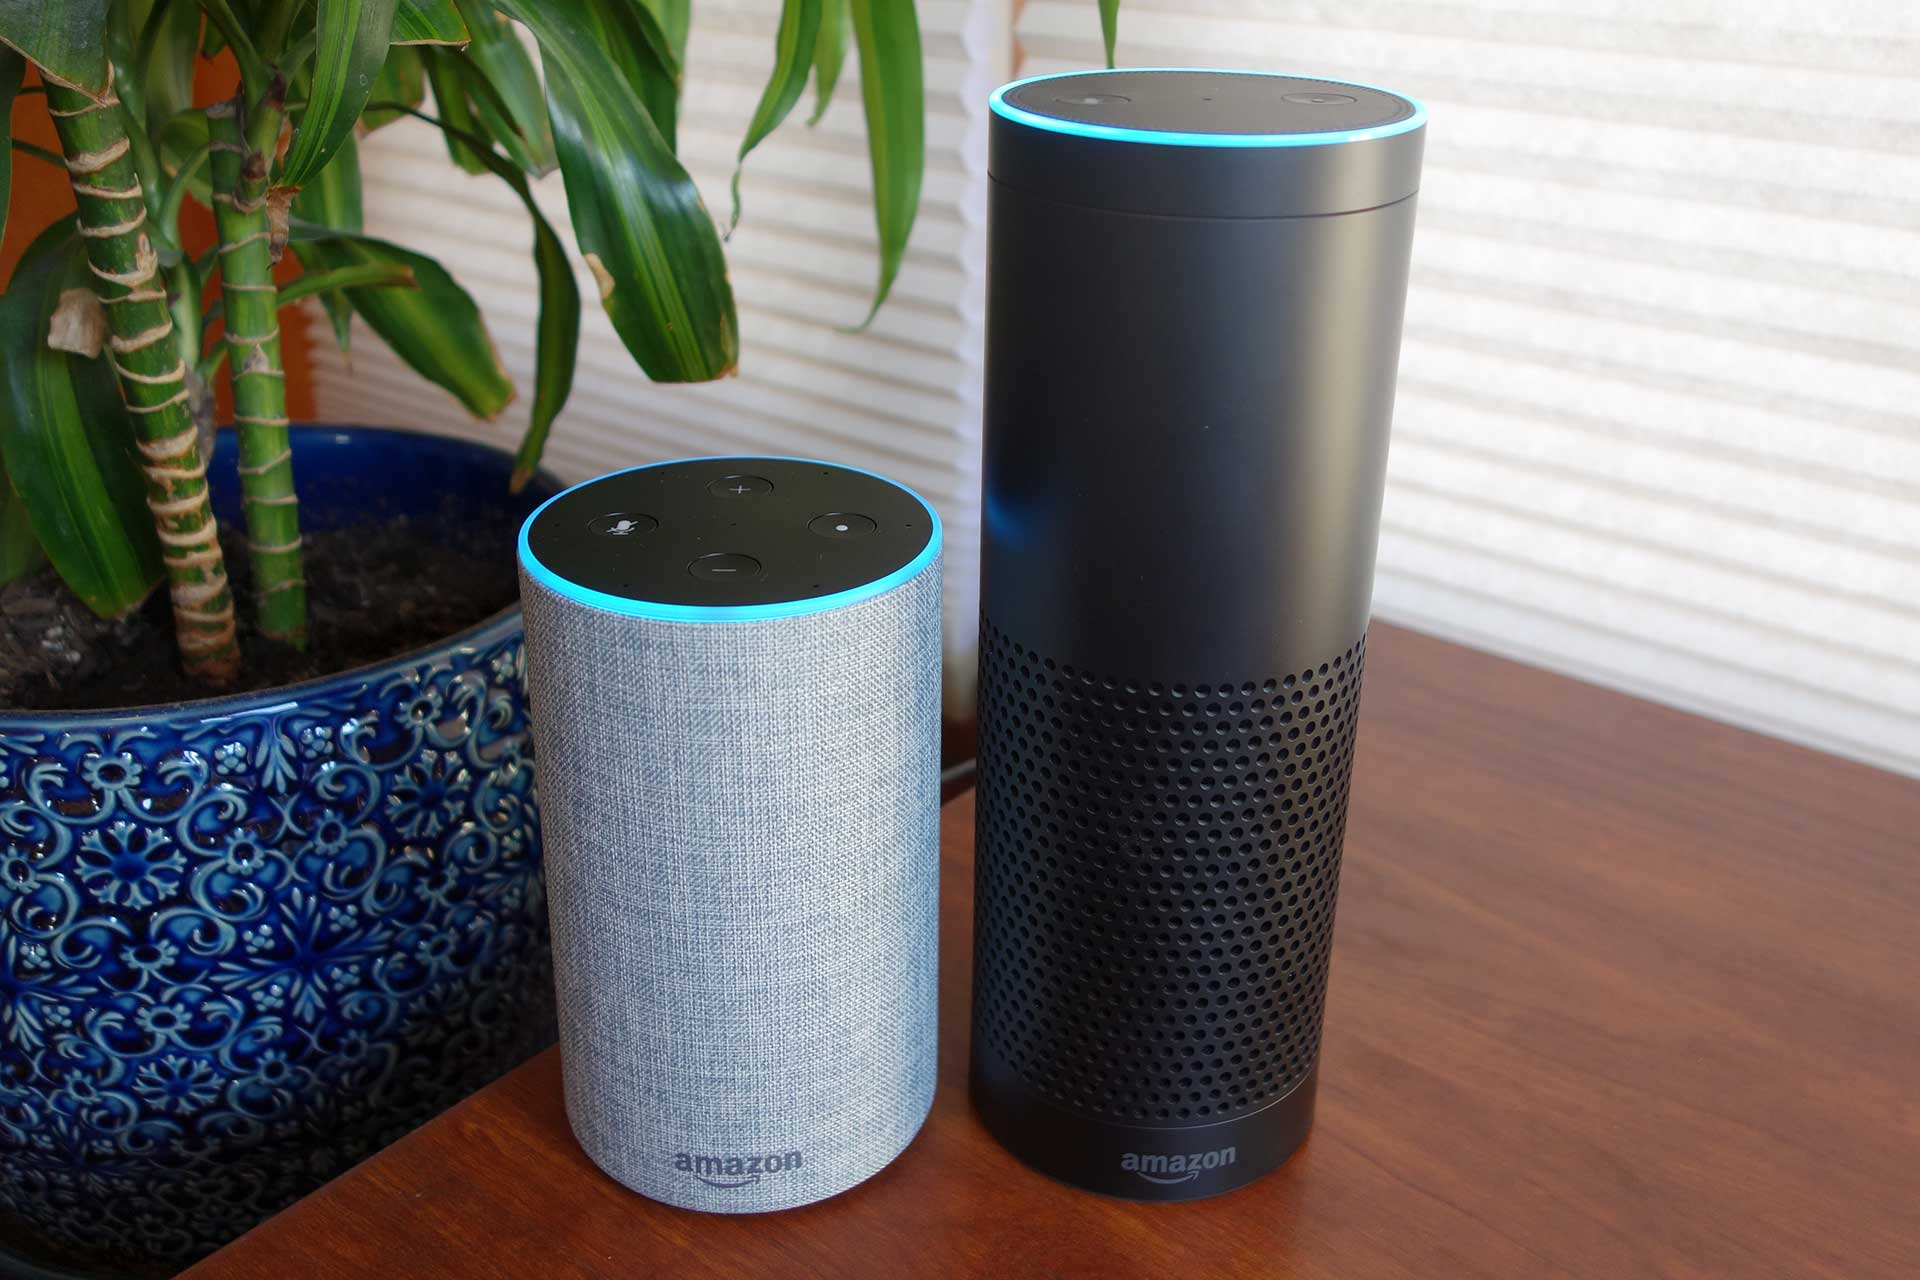 Alexa's new 'Brief Mode' makes Amazon's voice-activated assistant talk less